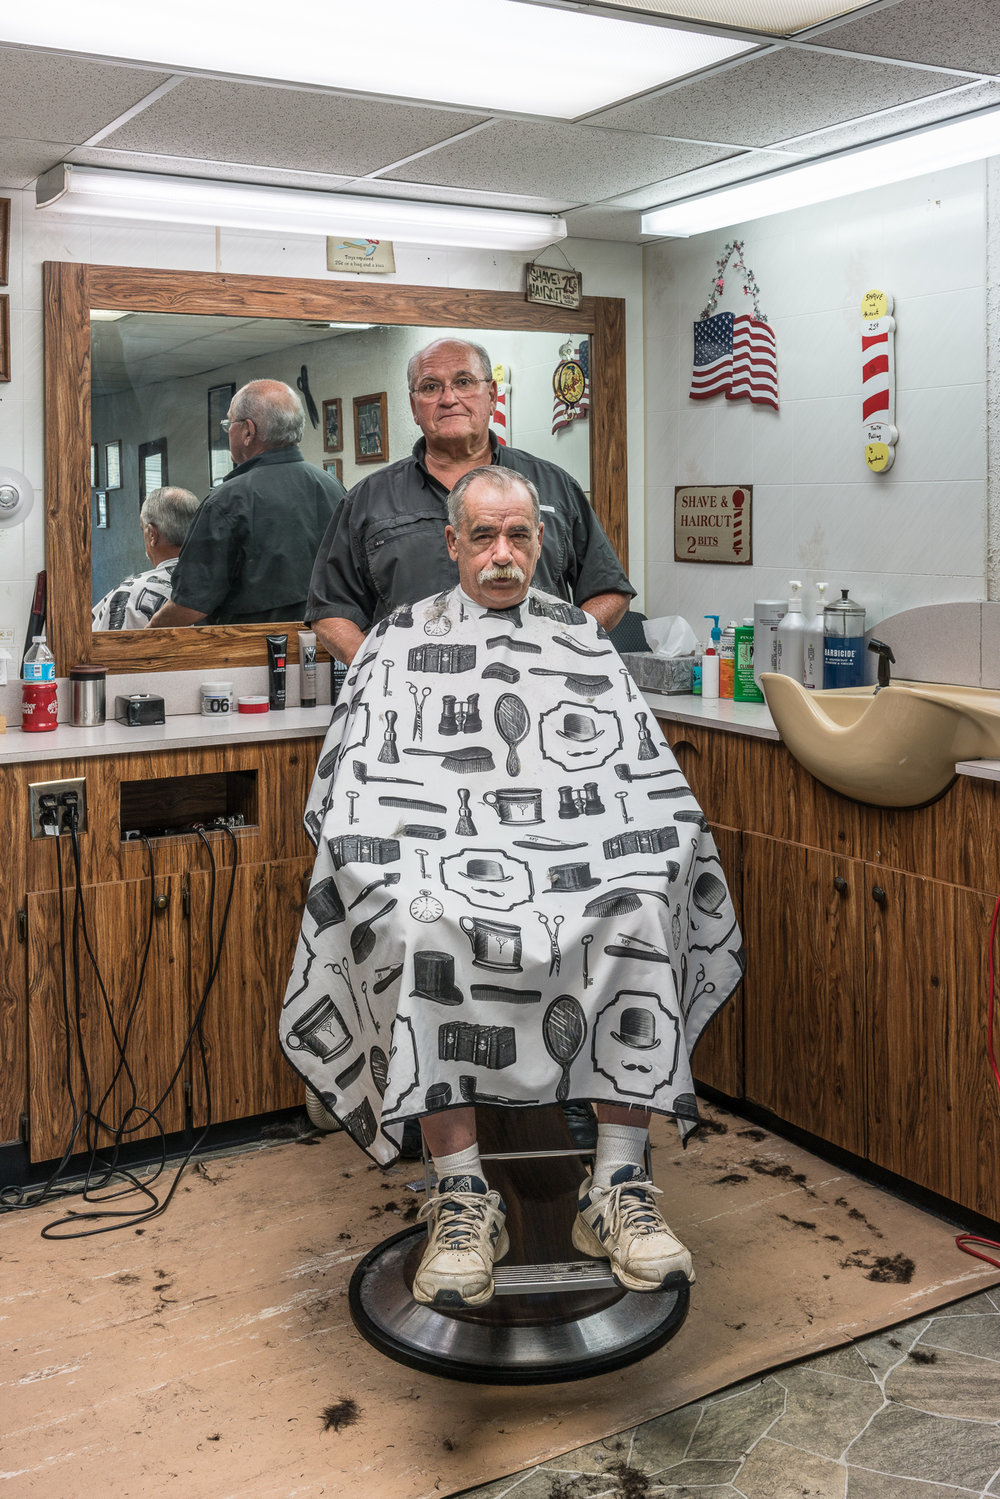 Jerry and Larry at the Barber Shop, De Soto, Missouri, 2017